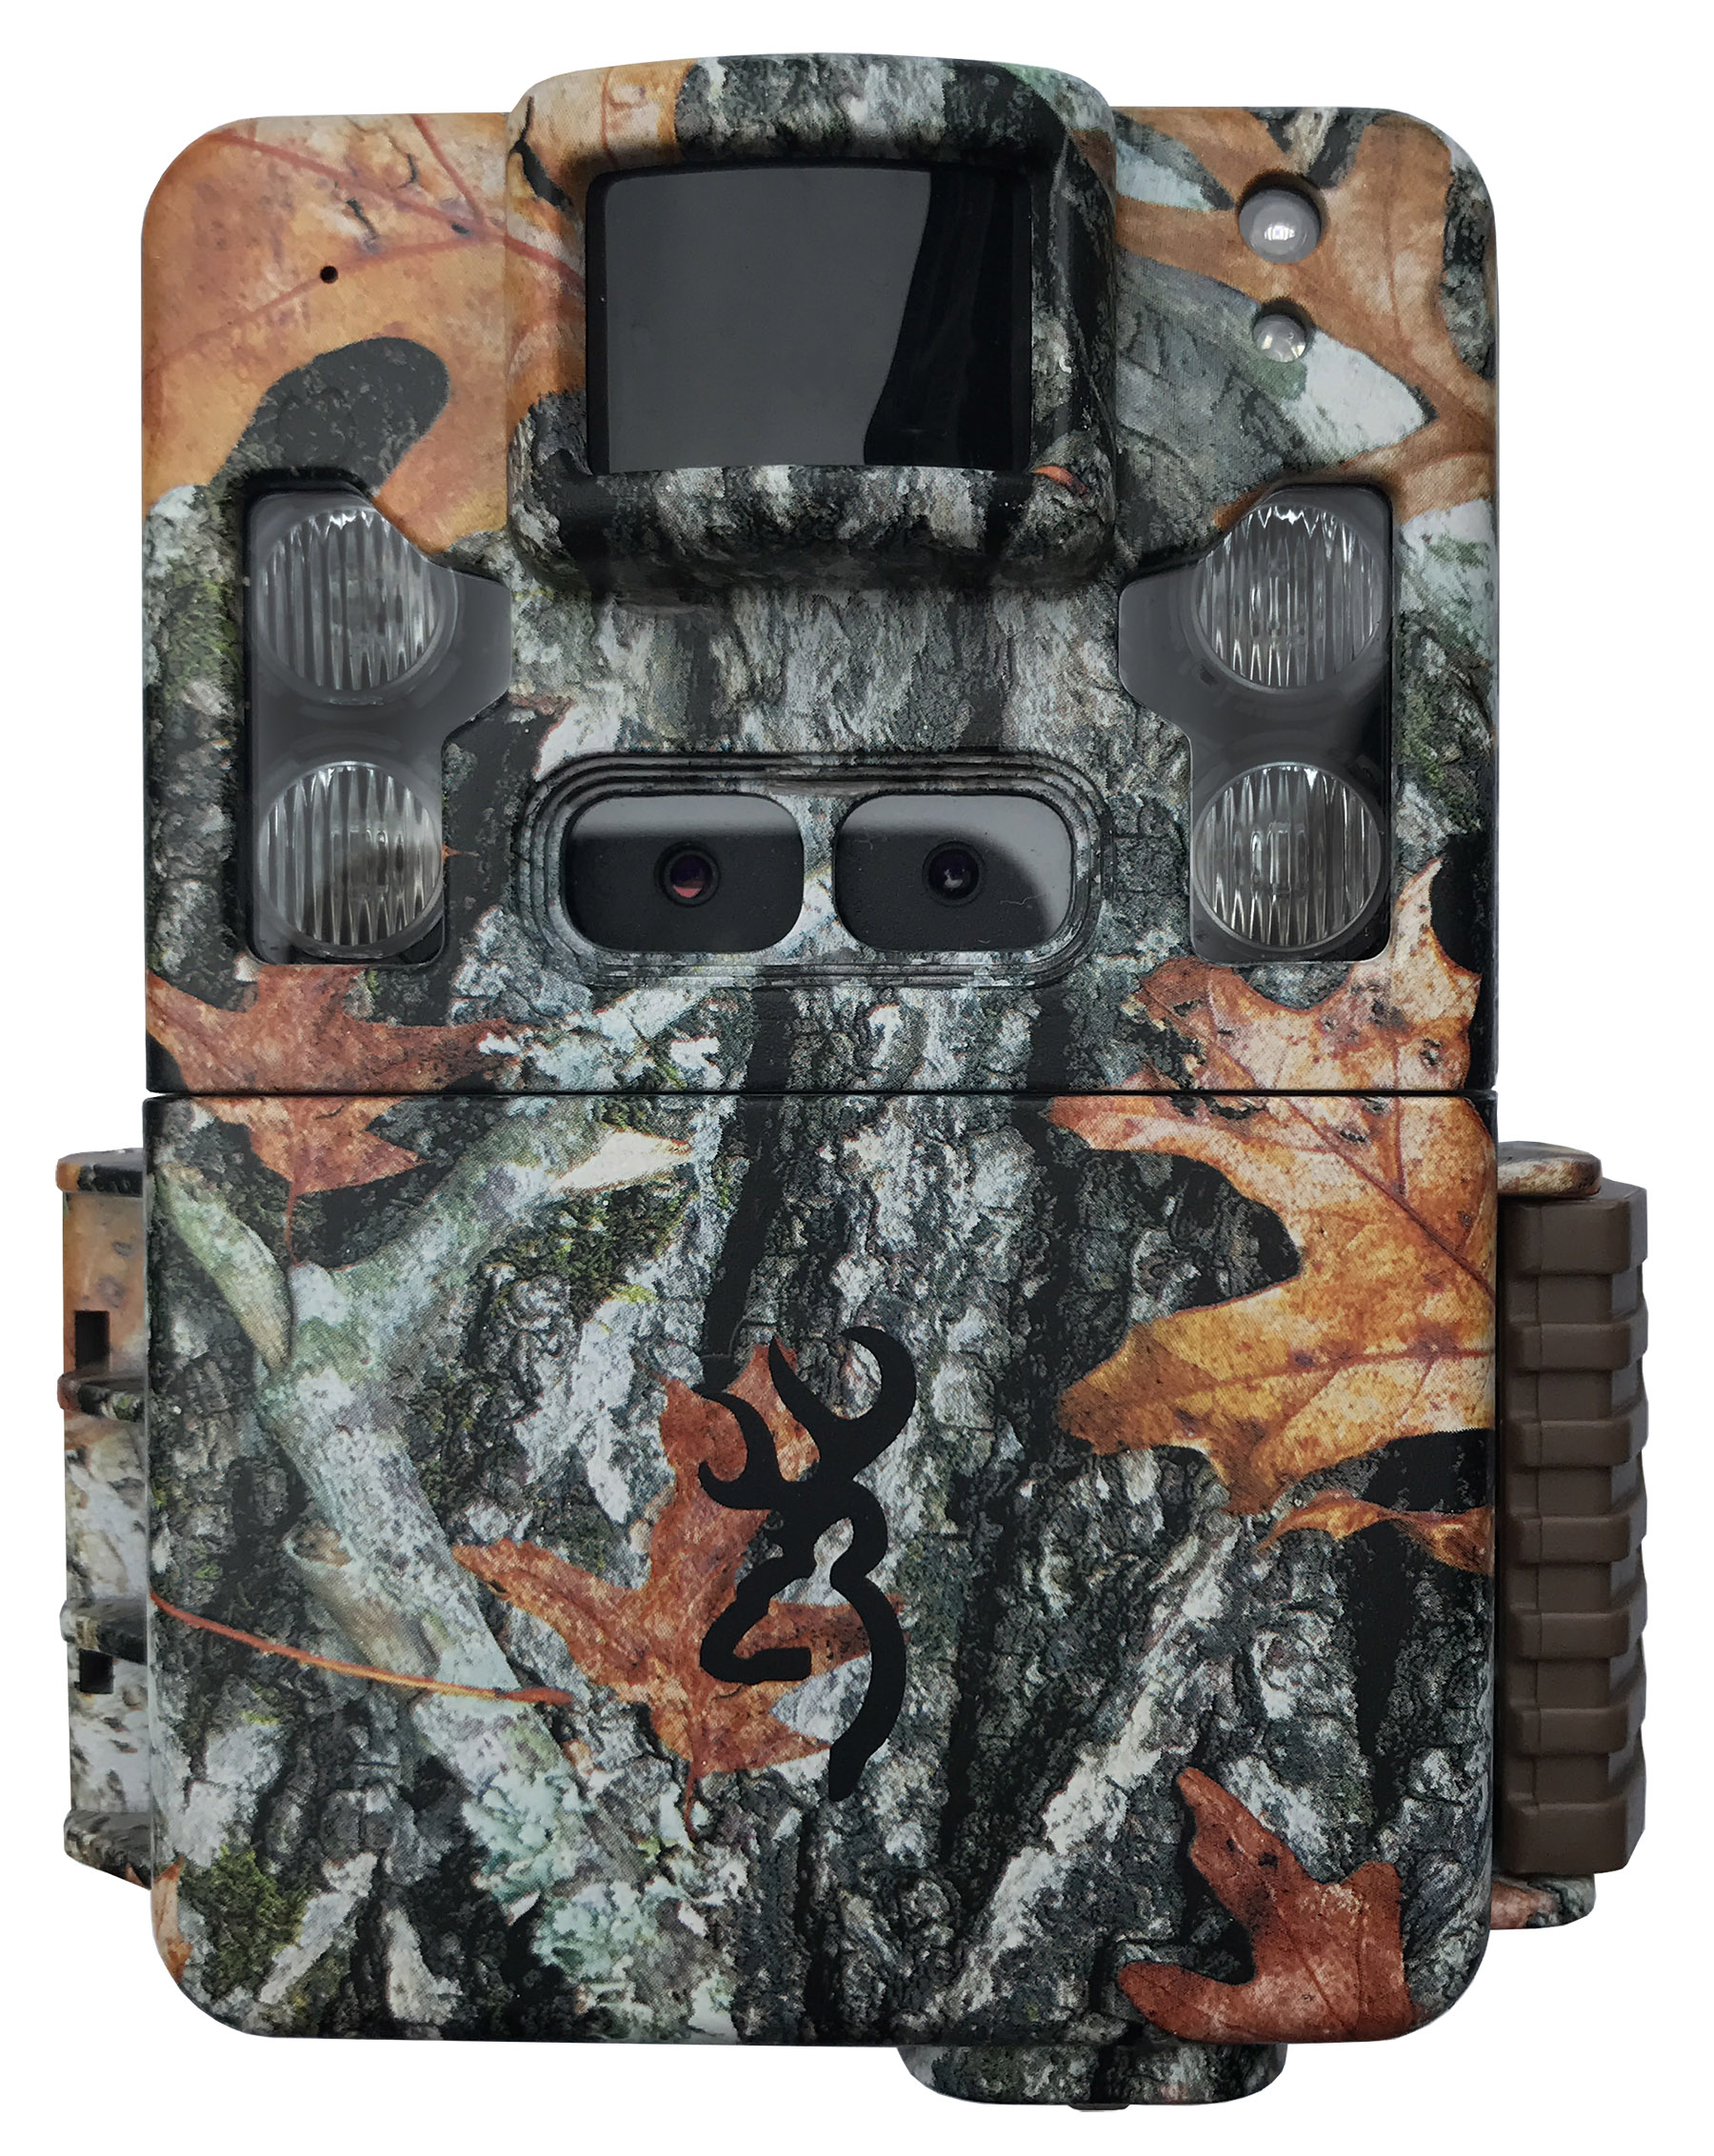 2018 Browning Trail Camera Models Released!